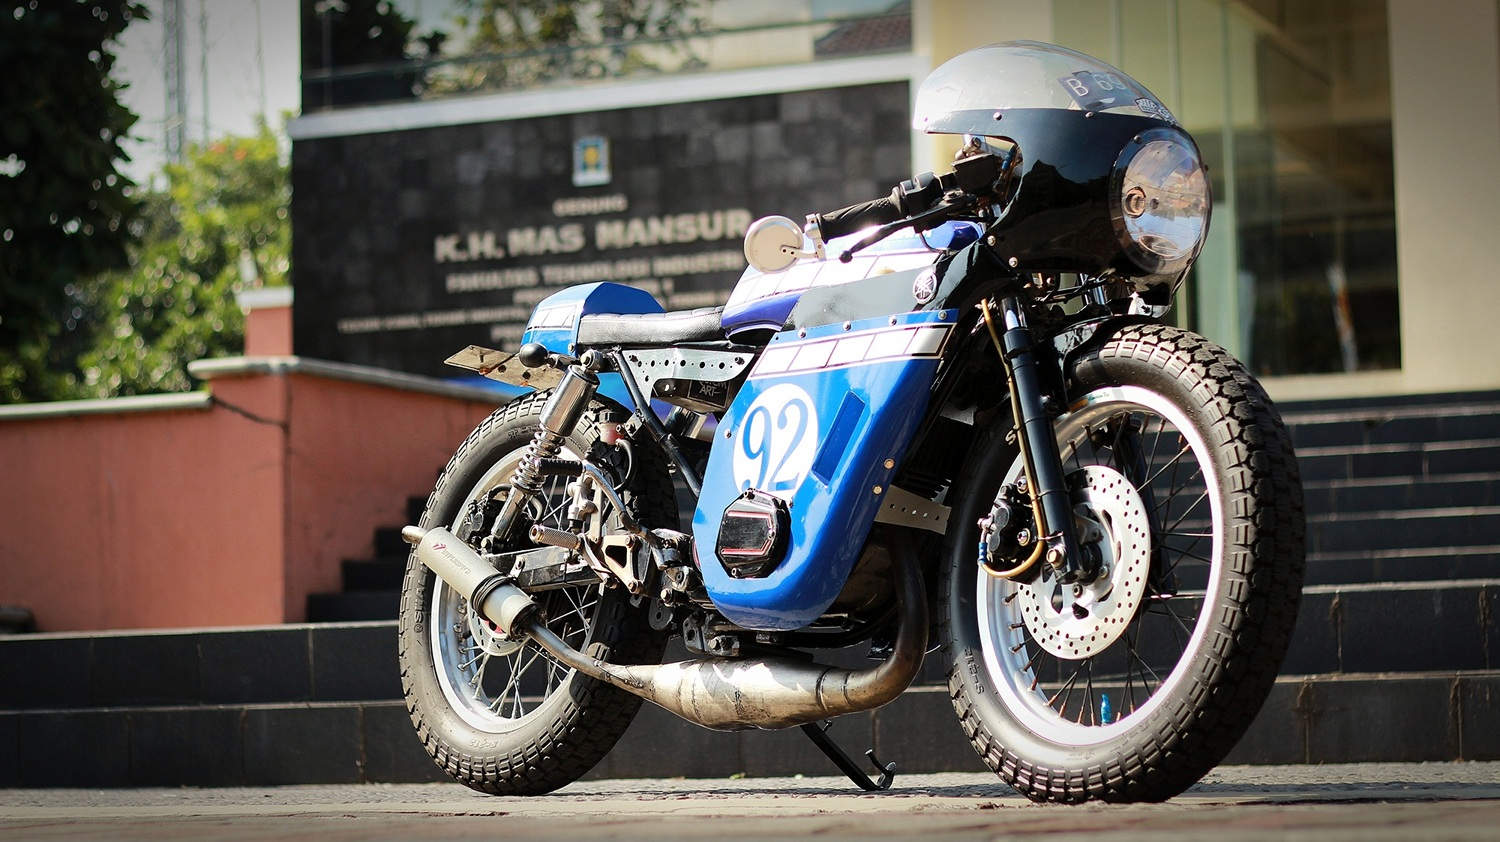 Yamaha Cafe Racer For Sale